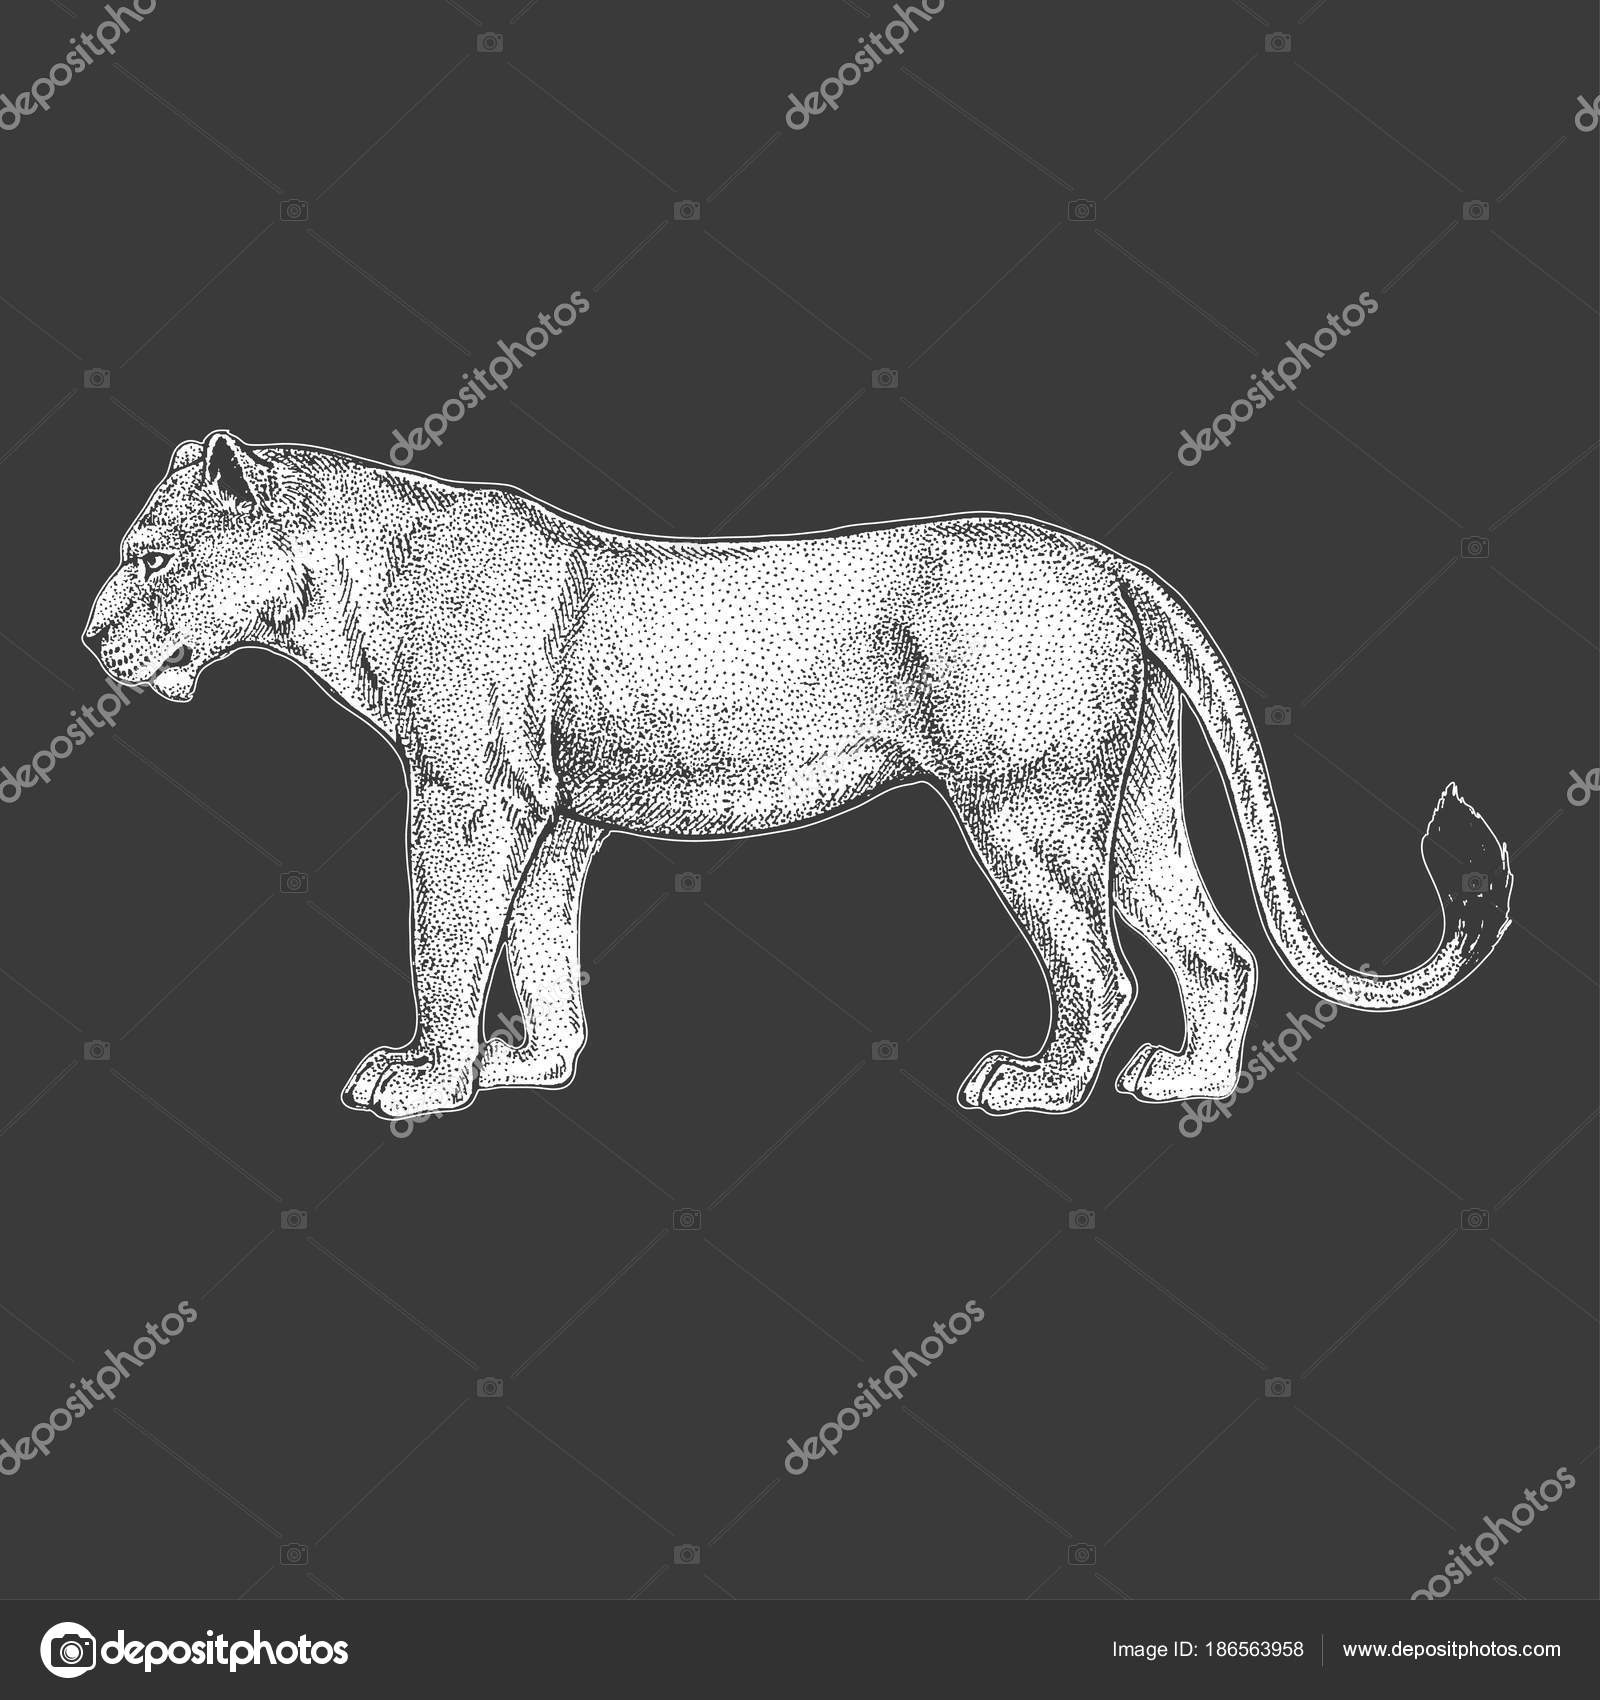 Zoo African Fauna Lion Wild Cat Hand Drawn Illustration For